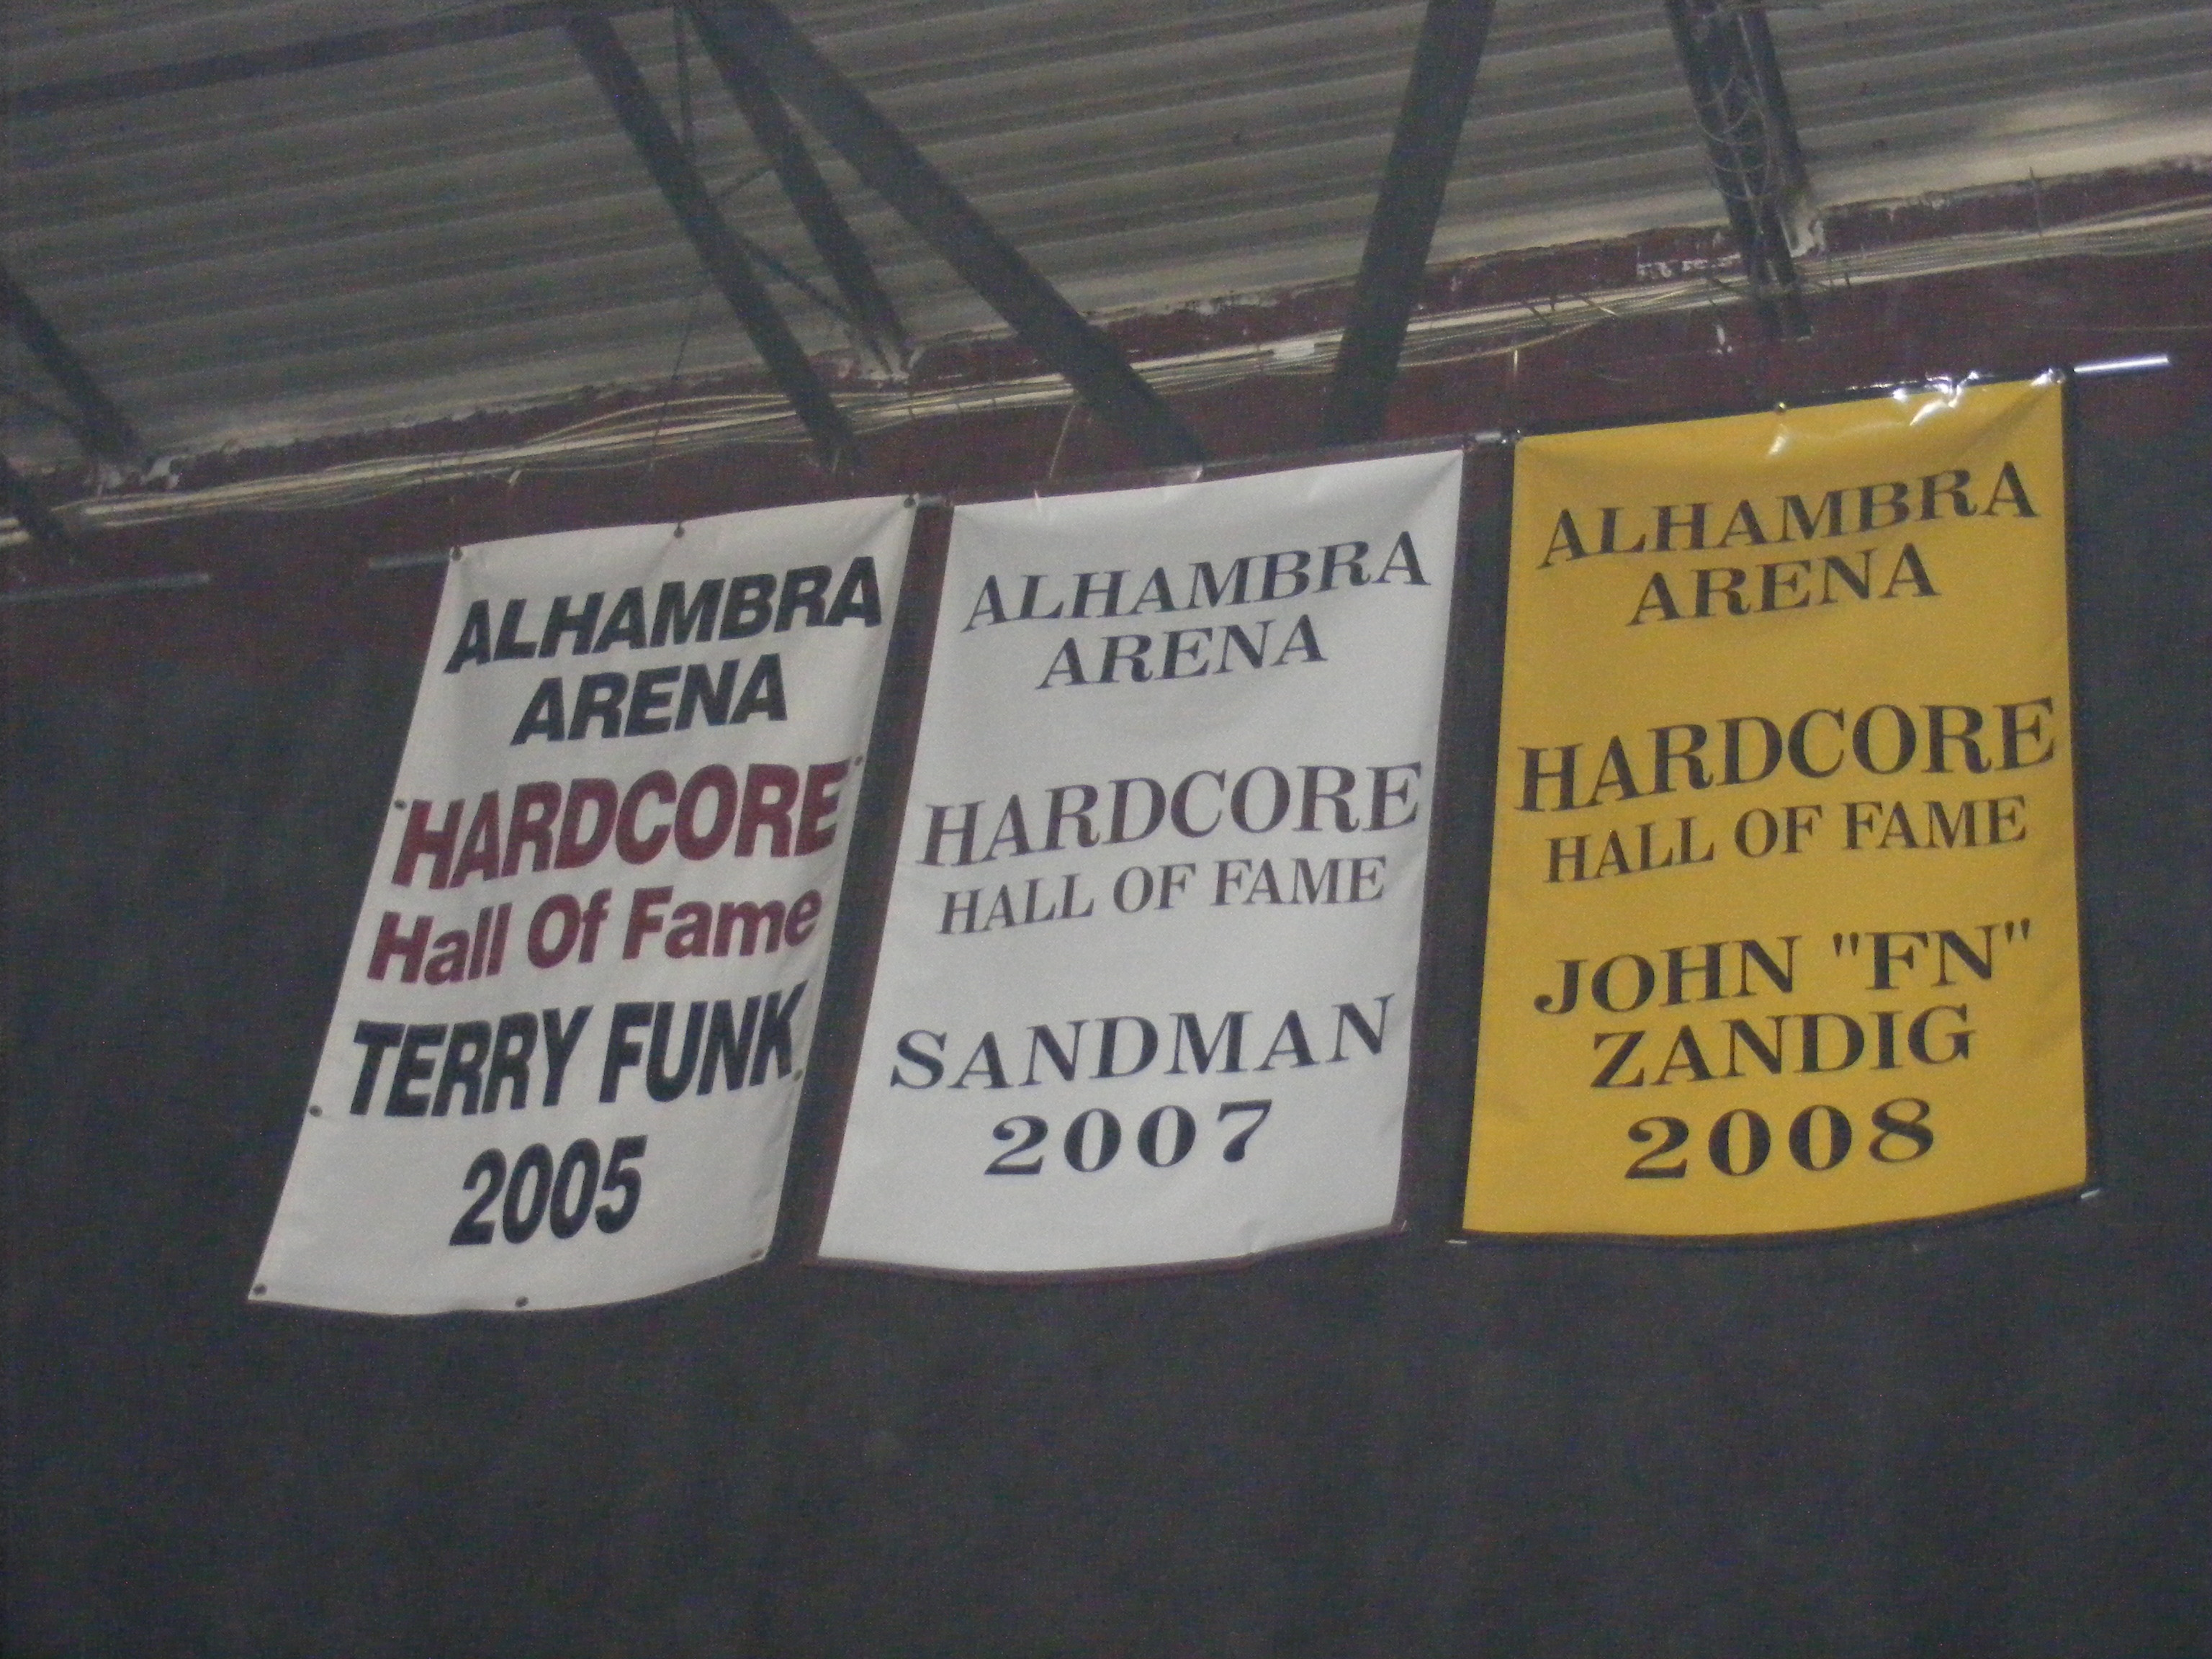 Description Banners for Terry Funk, Sandman, and John 'FN' Zandig at ...